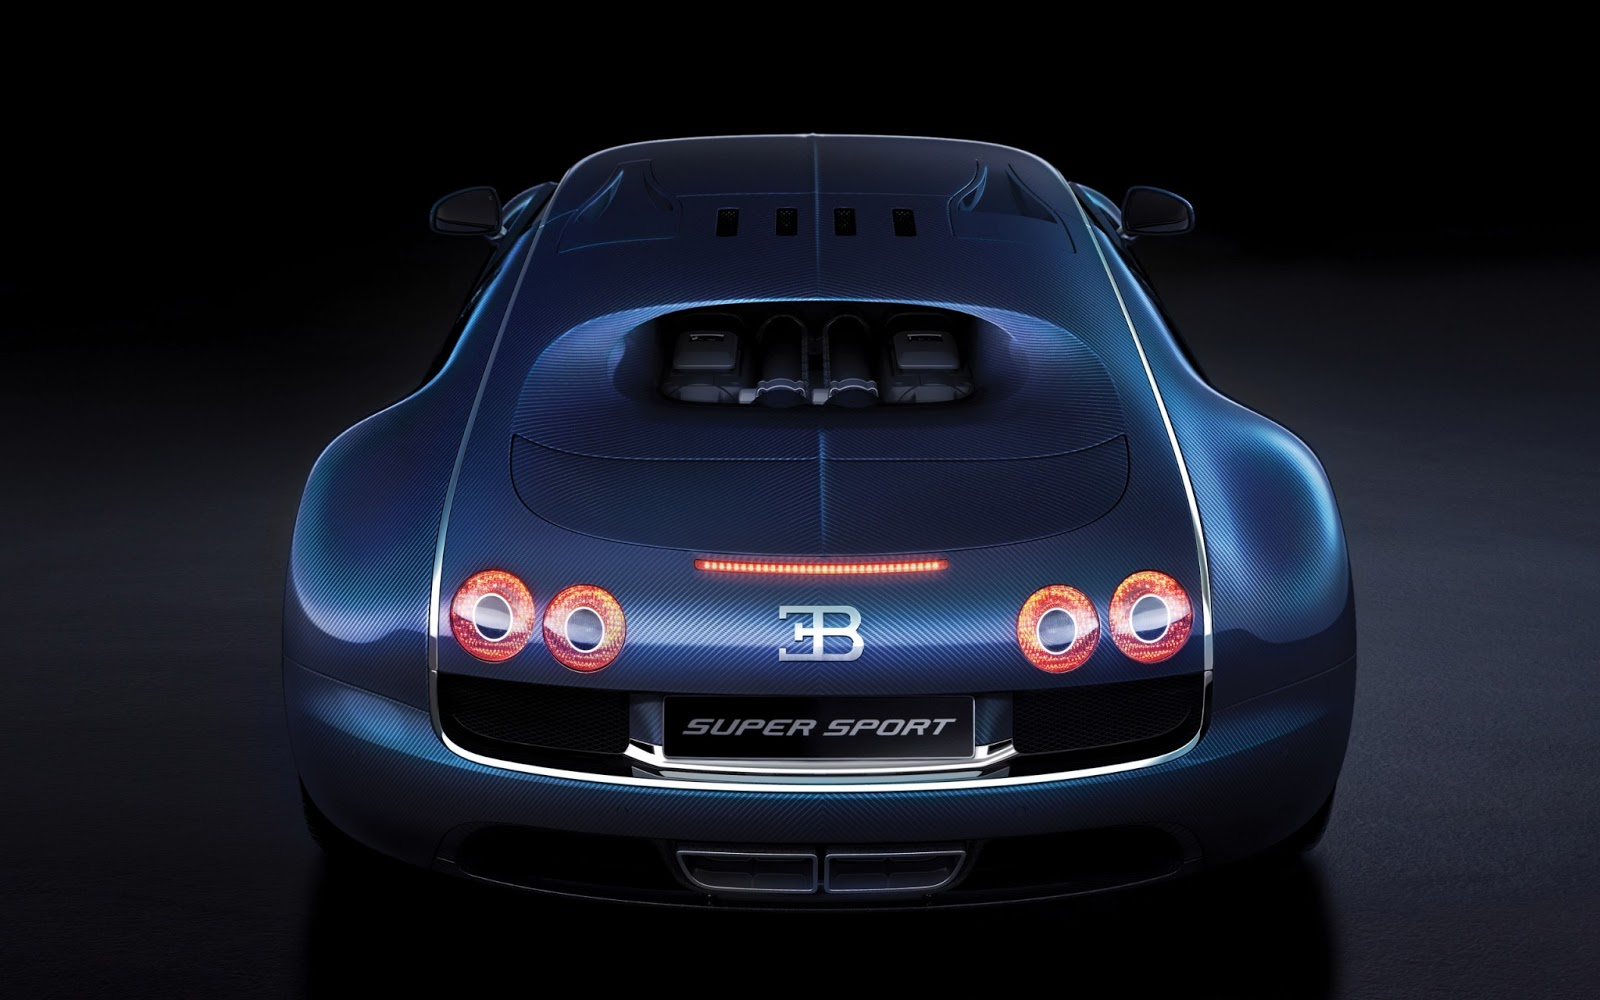 Bugatti Veyron Super Sport Wallpaper Hd: Wallpapers Hd For Mac: The Best Bugatti Veyron Super Sport